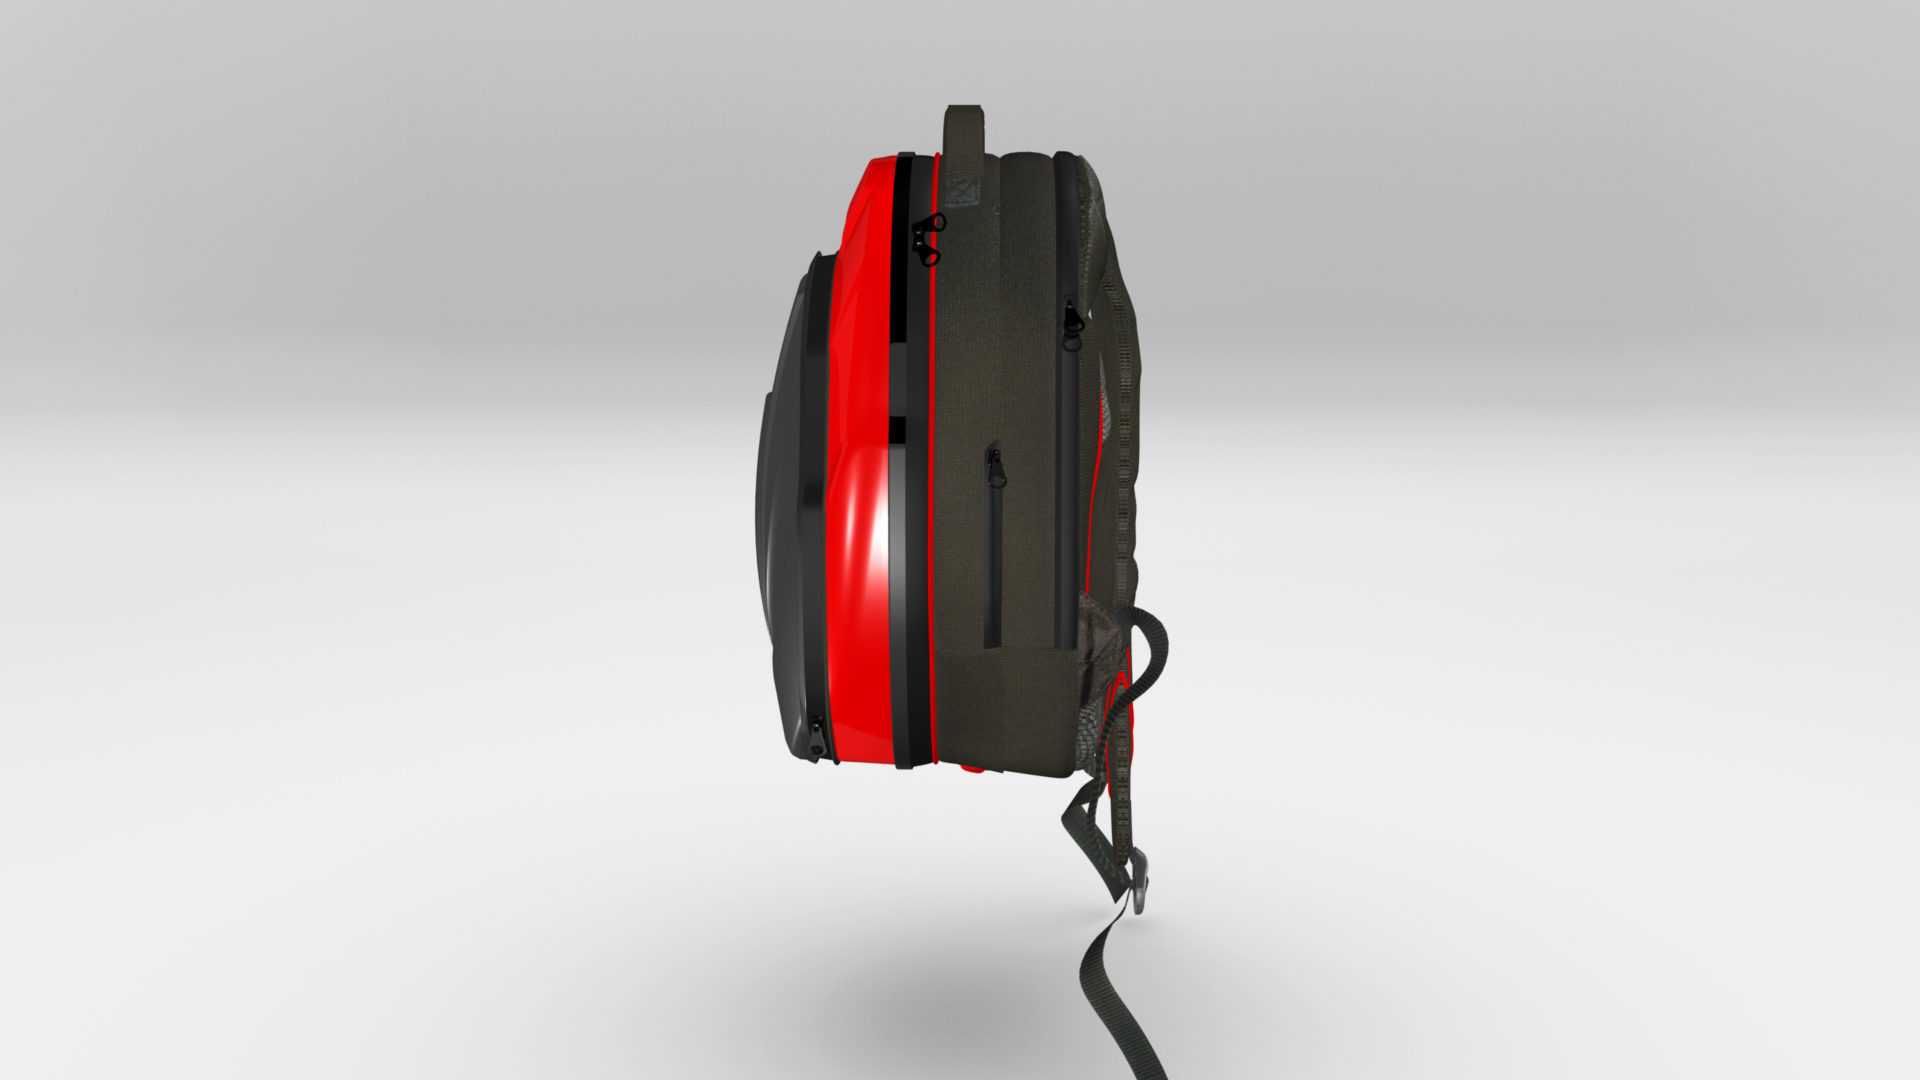 backpack 01 3d model max fbx ma mb obj 286038